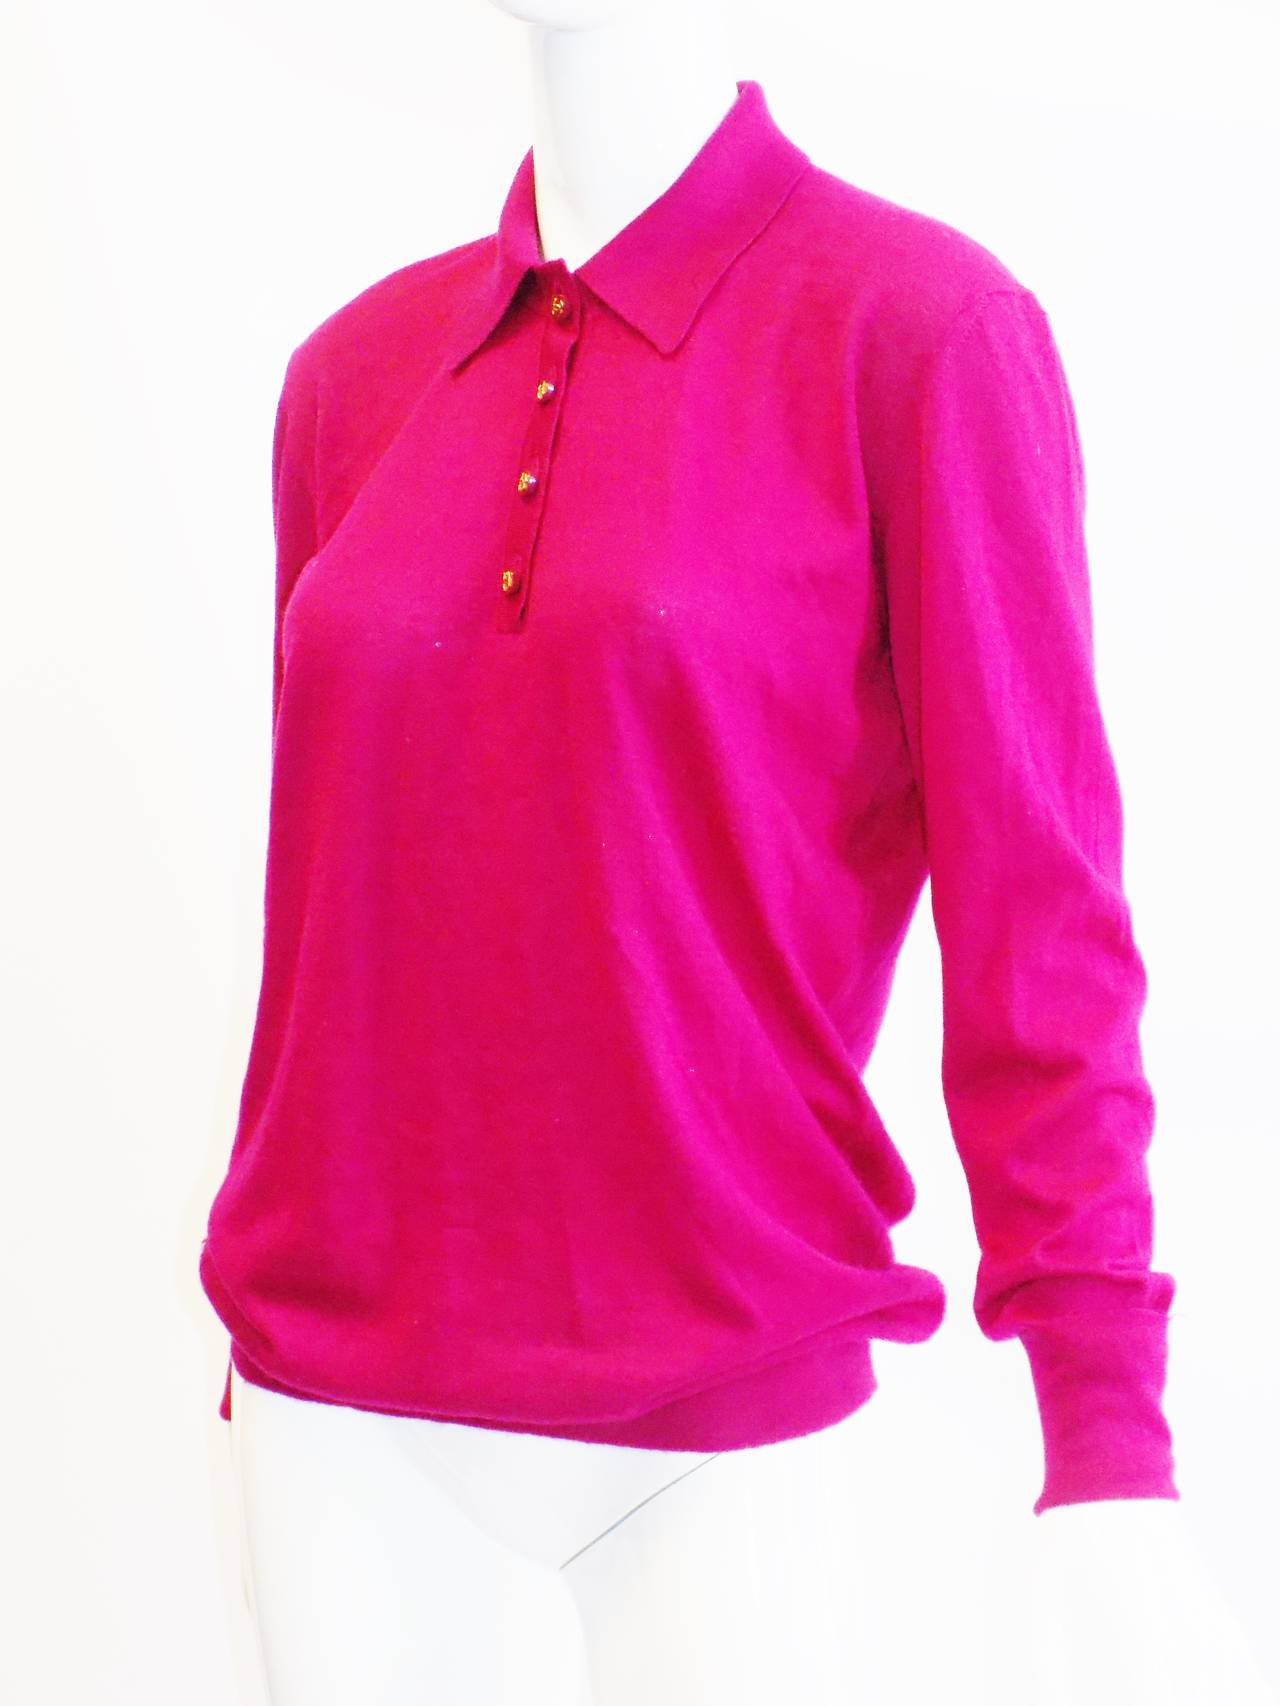 Chanel Vintage  cerise pink  cashmere button front  sweater top 2